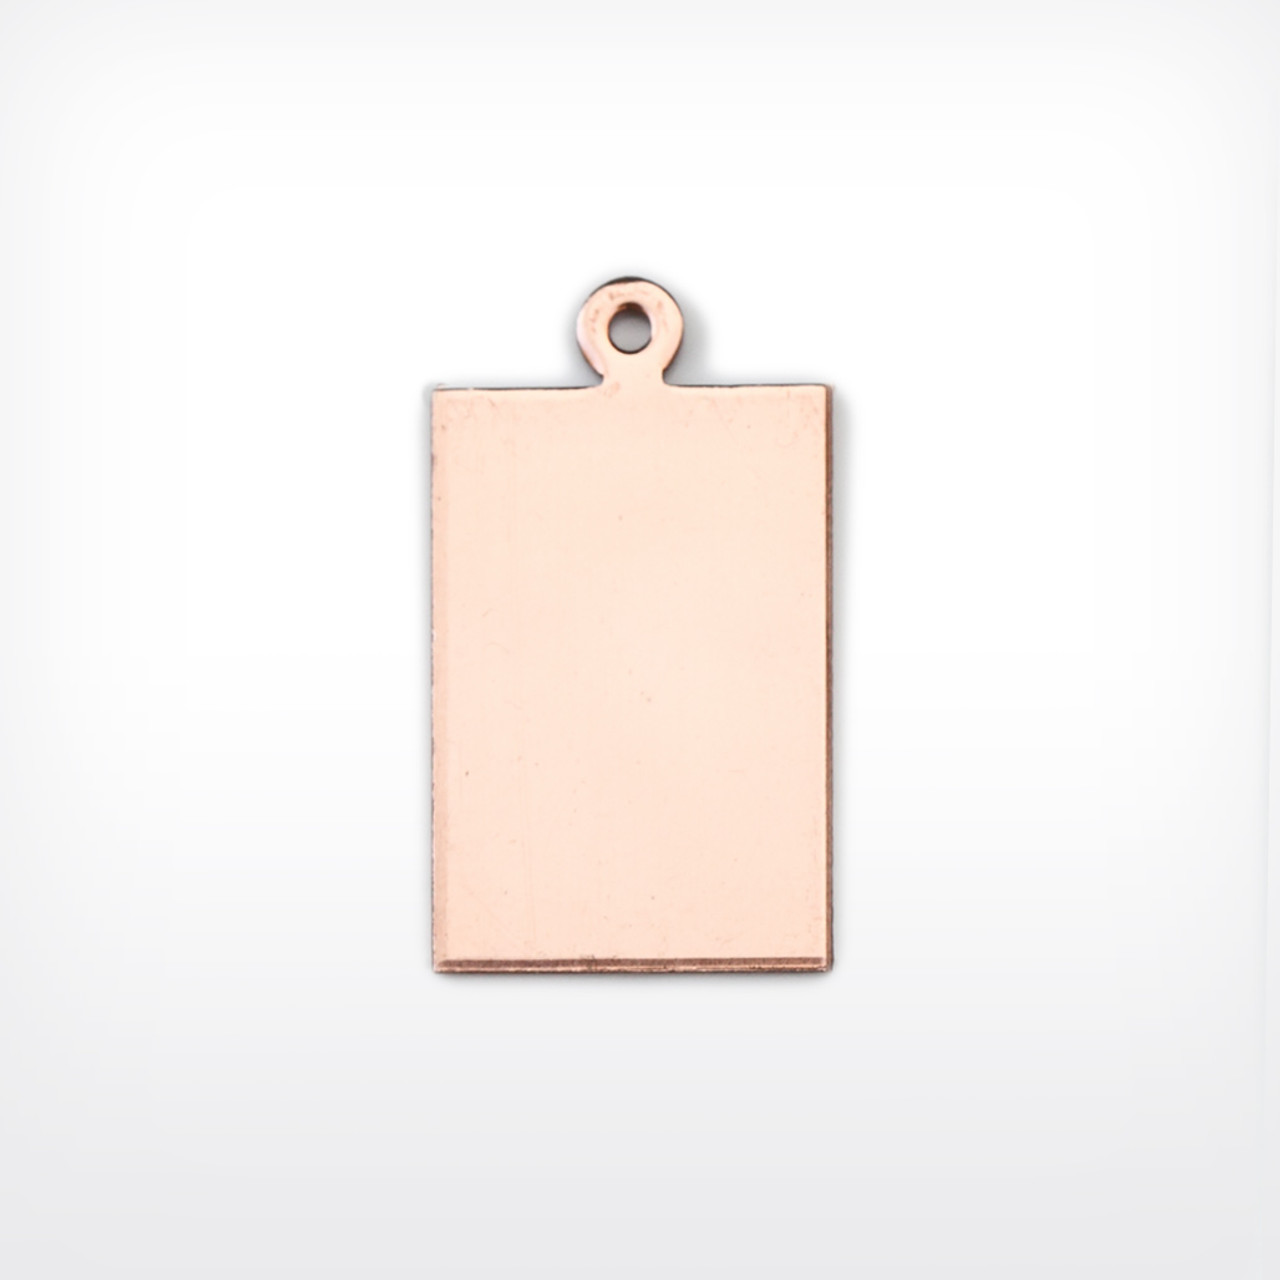 Copper Rectangle with lug, 22x15mm - Pack of 10 (506-CU) - END OF LINE 50% OFF